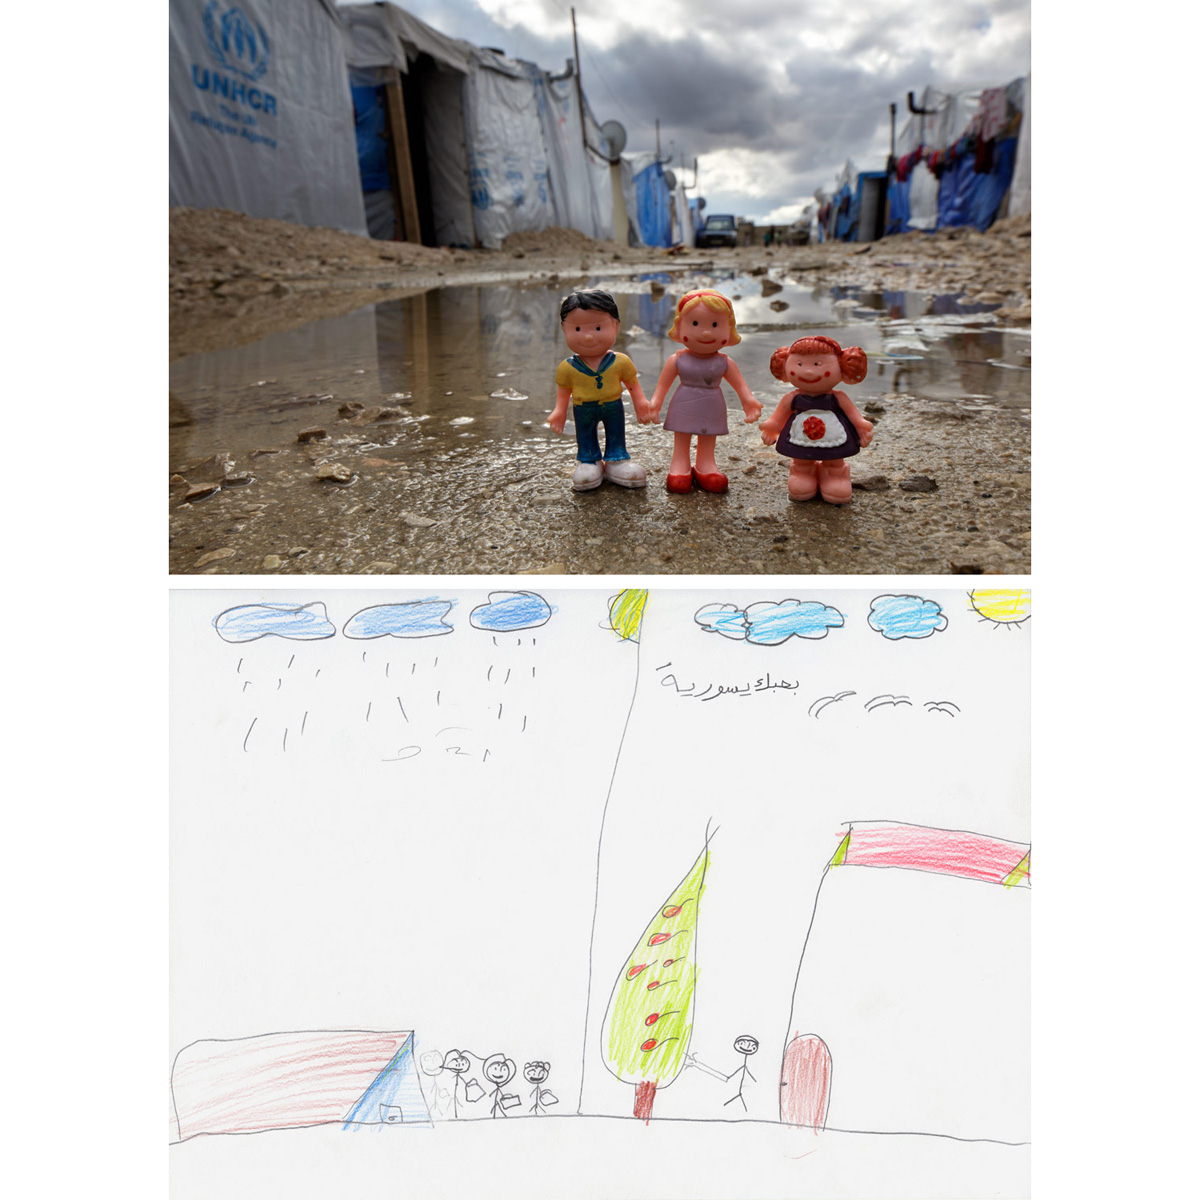 "Refugee Camp Life - Informal Syrian Refugee Camp, Bekaa Valley, Lebanon2014With ""I love Syria"" written in Arabic on the right side of her drawing, ""Hadil"" showed her life before the war, her dad in front of their home watering a tree. On the left, she drew the refugee tent she was now living in with her brother and sister. Her father is notably absent as the children carry their possessions. Hadil said that she hated the cold rains that had come that winter. Several young Syrian refugees who had recently arrived in Lebanon made similar drawings about adjusting to the harsh conditions within their informal encampment near the border. The toy figures, sourced from a close-by shop, were photographed within Hadil's camp."